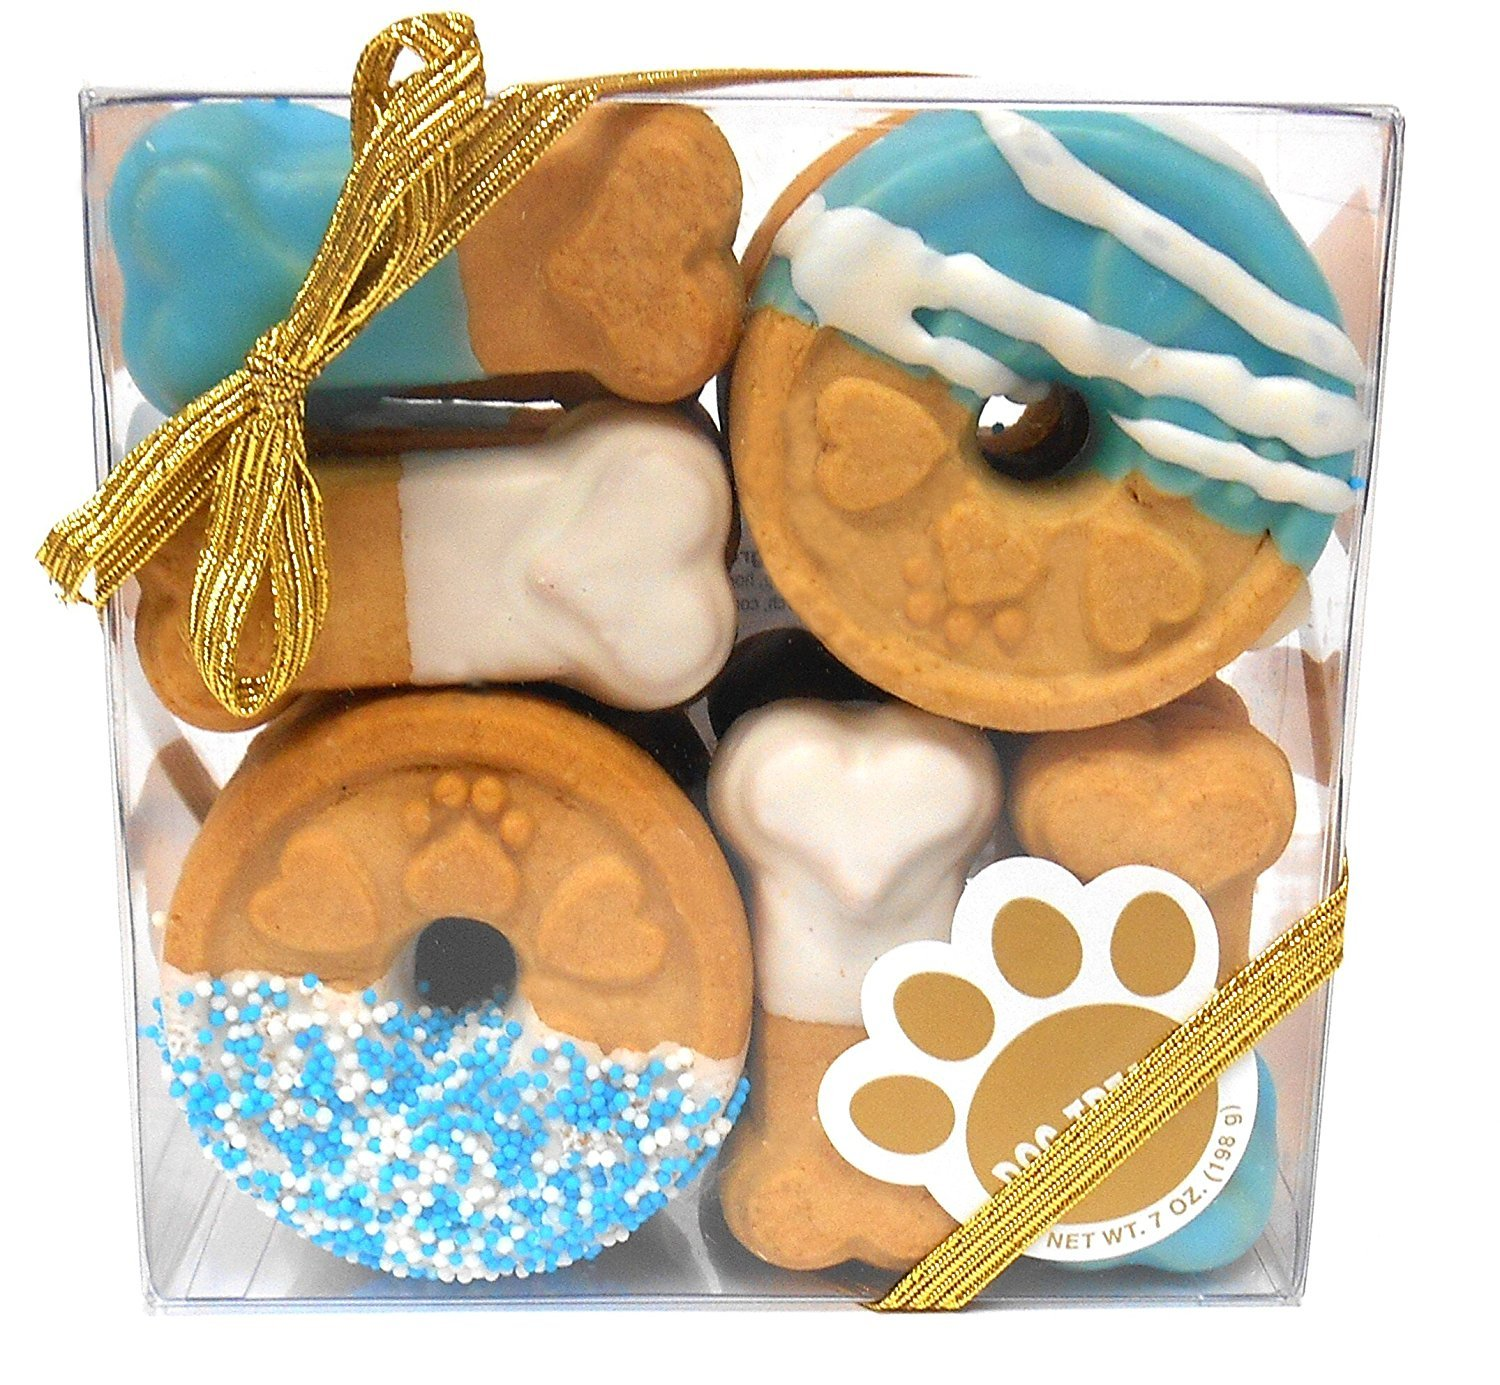 Claudia'S Canine Cuisine Signature Gift Box Of Dog Cookies, 7-Ounce, Blue Buddies 1